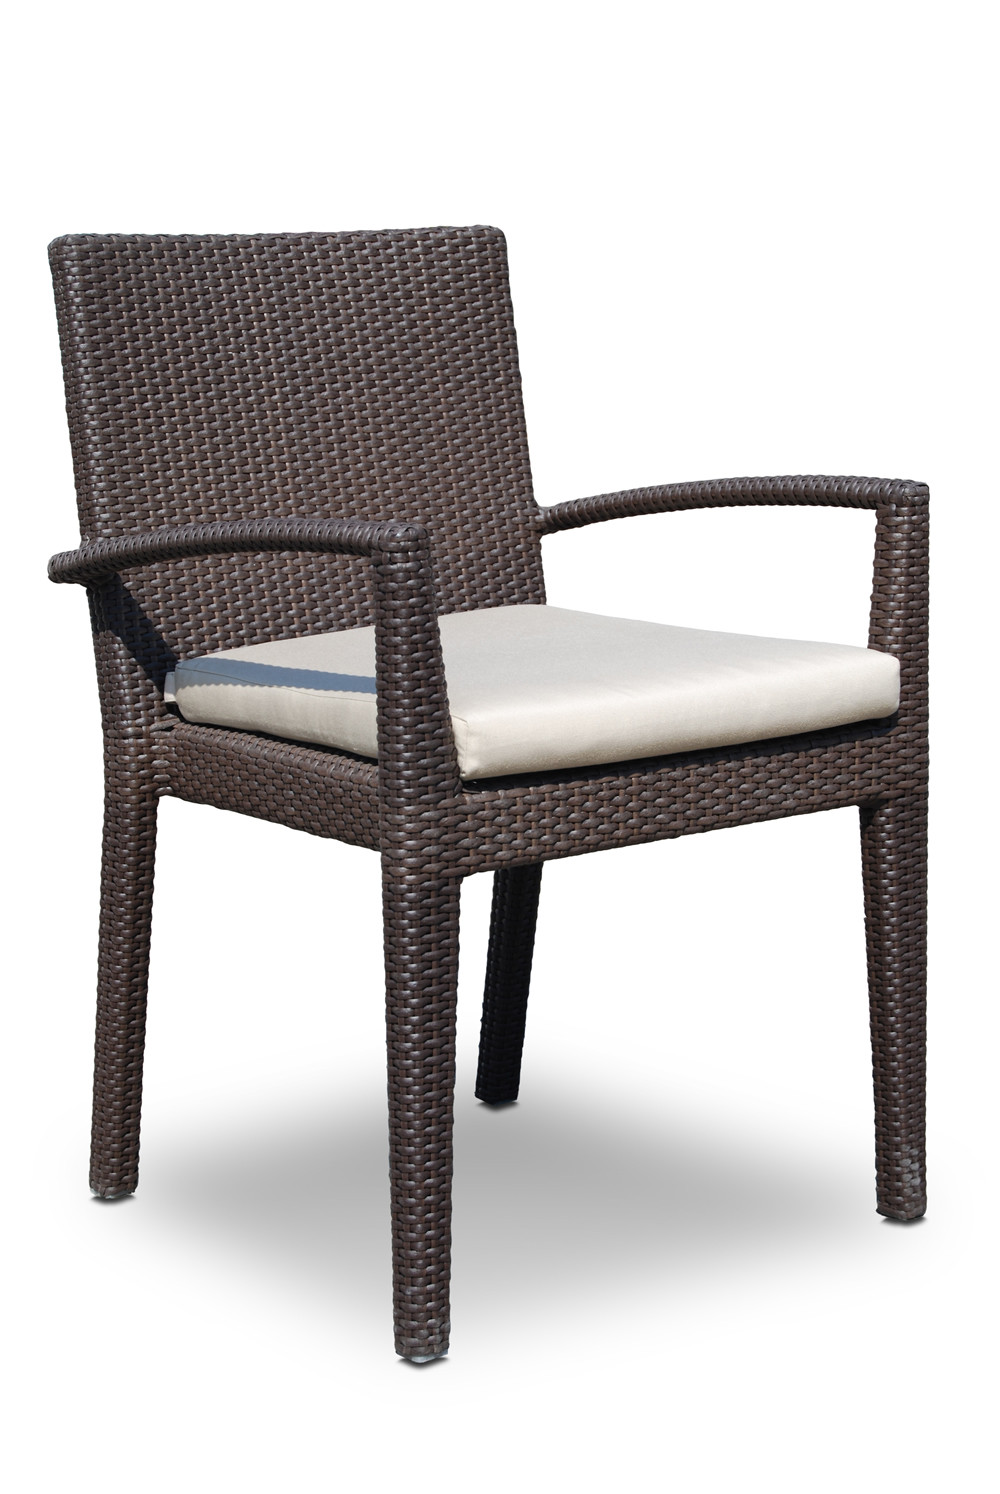 Hospitality Rattan Cava Wicker Dining Chair Wicker